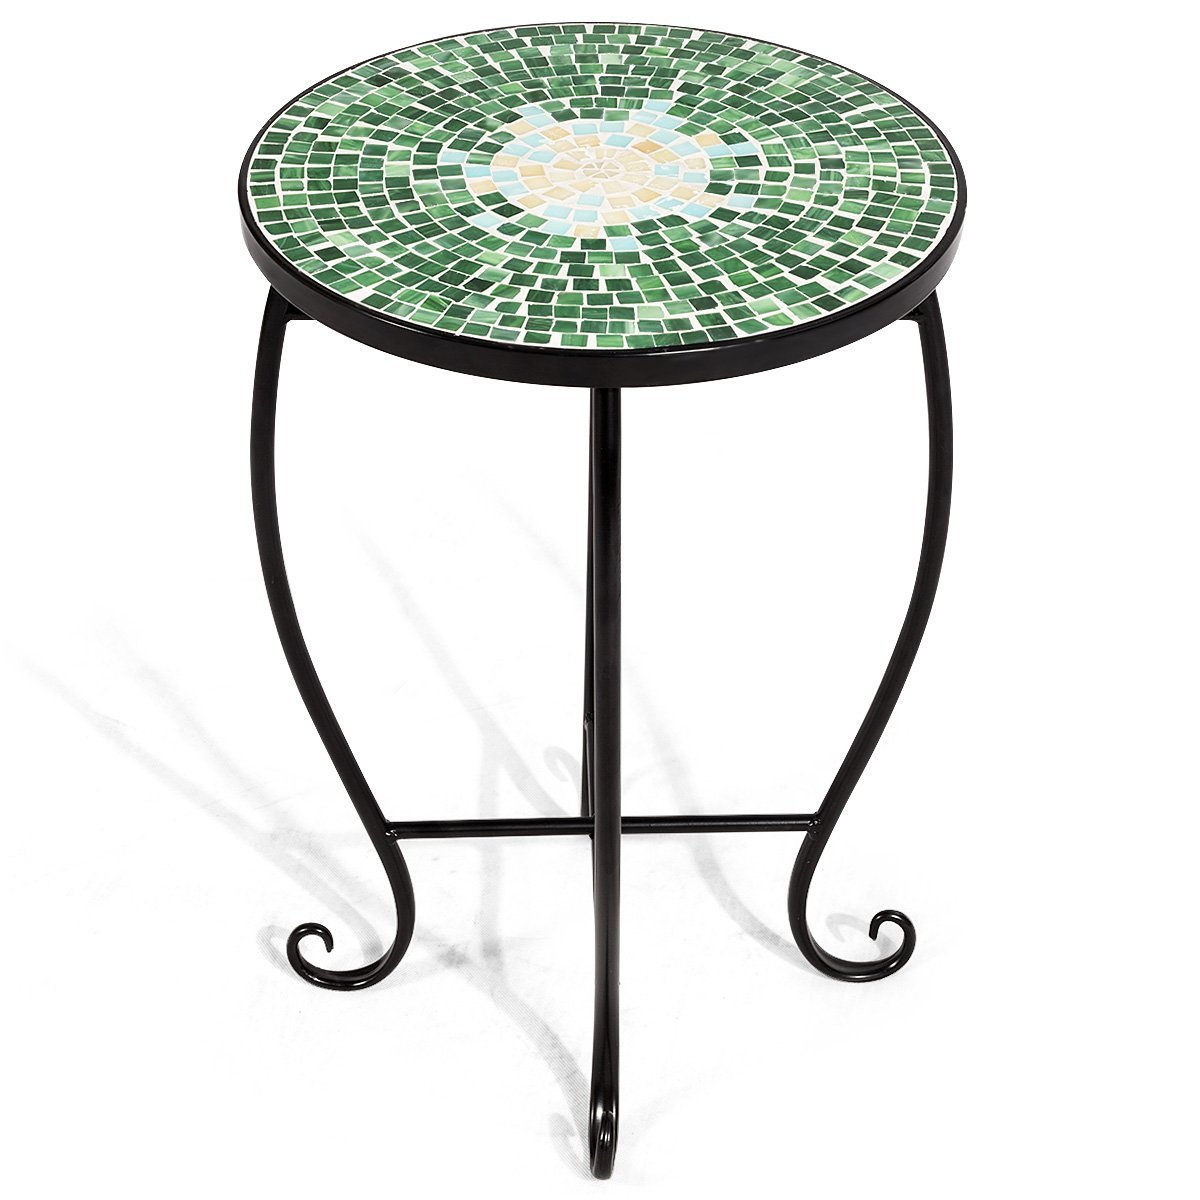 outdoor mosaic coffee table find glass top side giantex round accent patio plant stand porch beach theme balcony back deck pool white mirrored lamp wide bedside cabinets brass